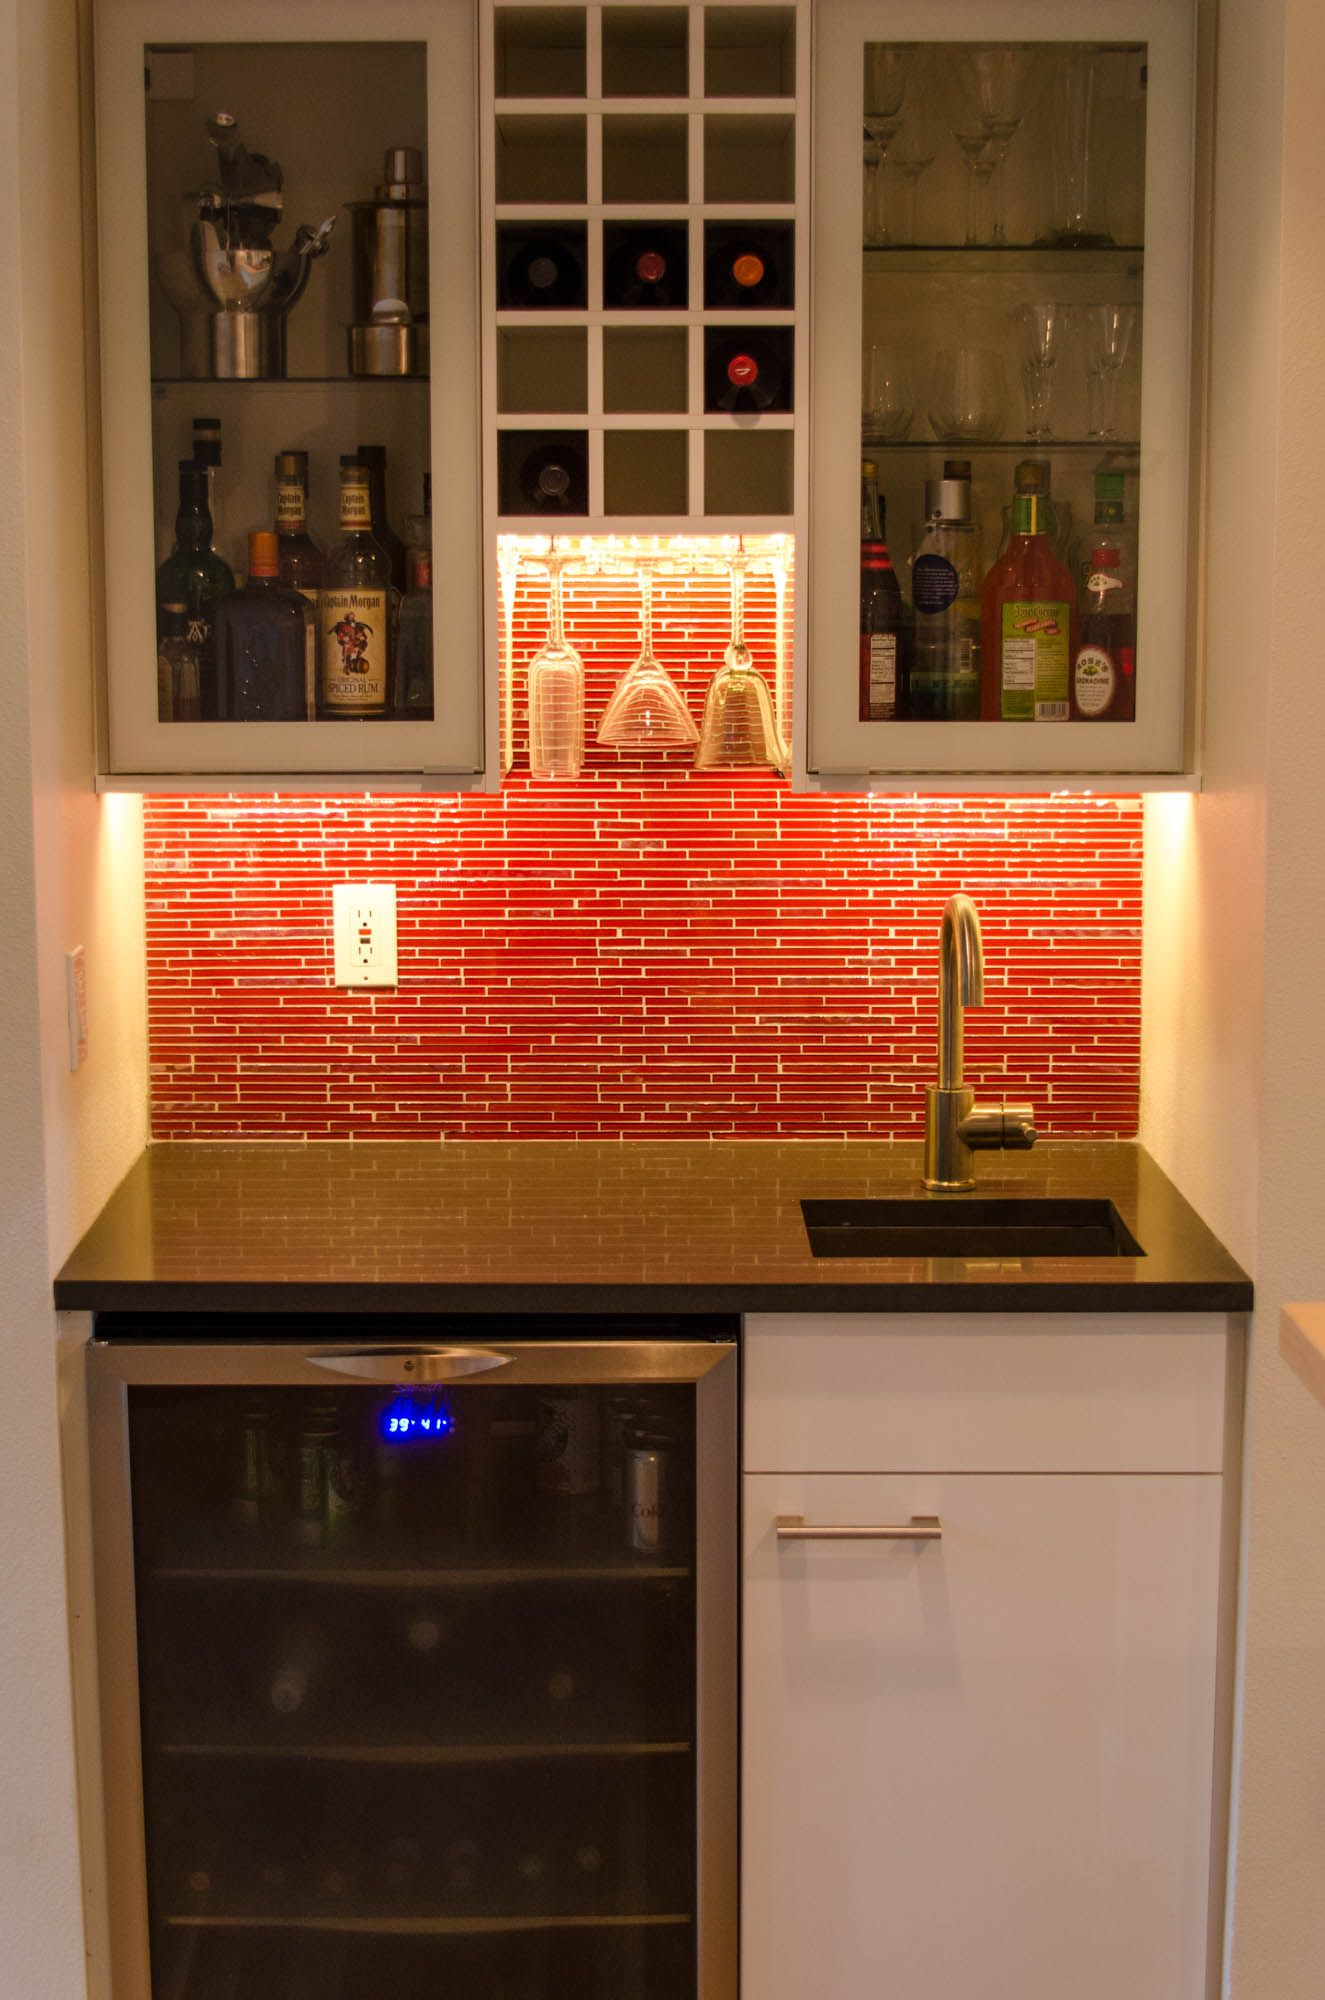 Charmant IKEA Wet Bar Cabinets With Sink In Small Kitche Red Backsplash Idea U2013